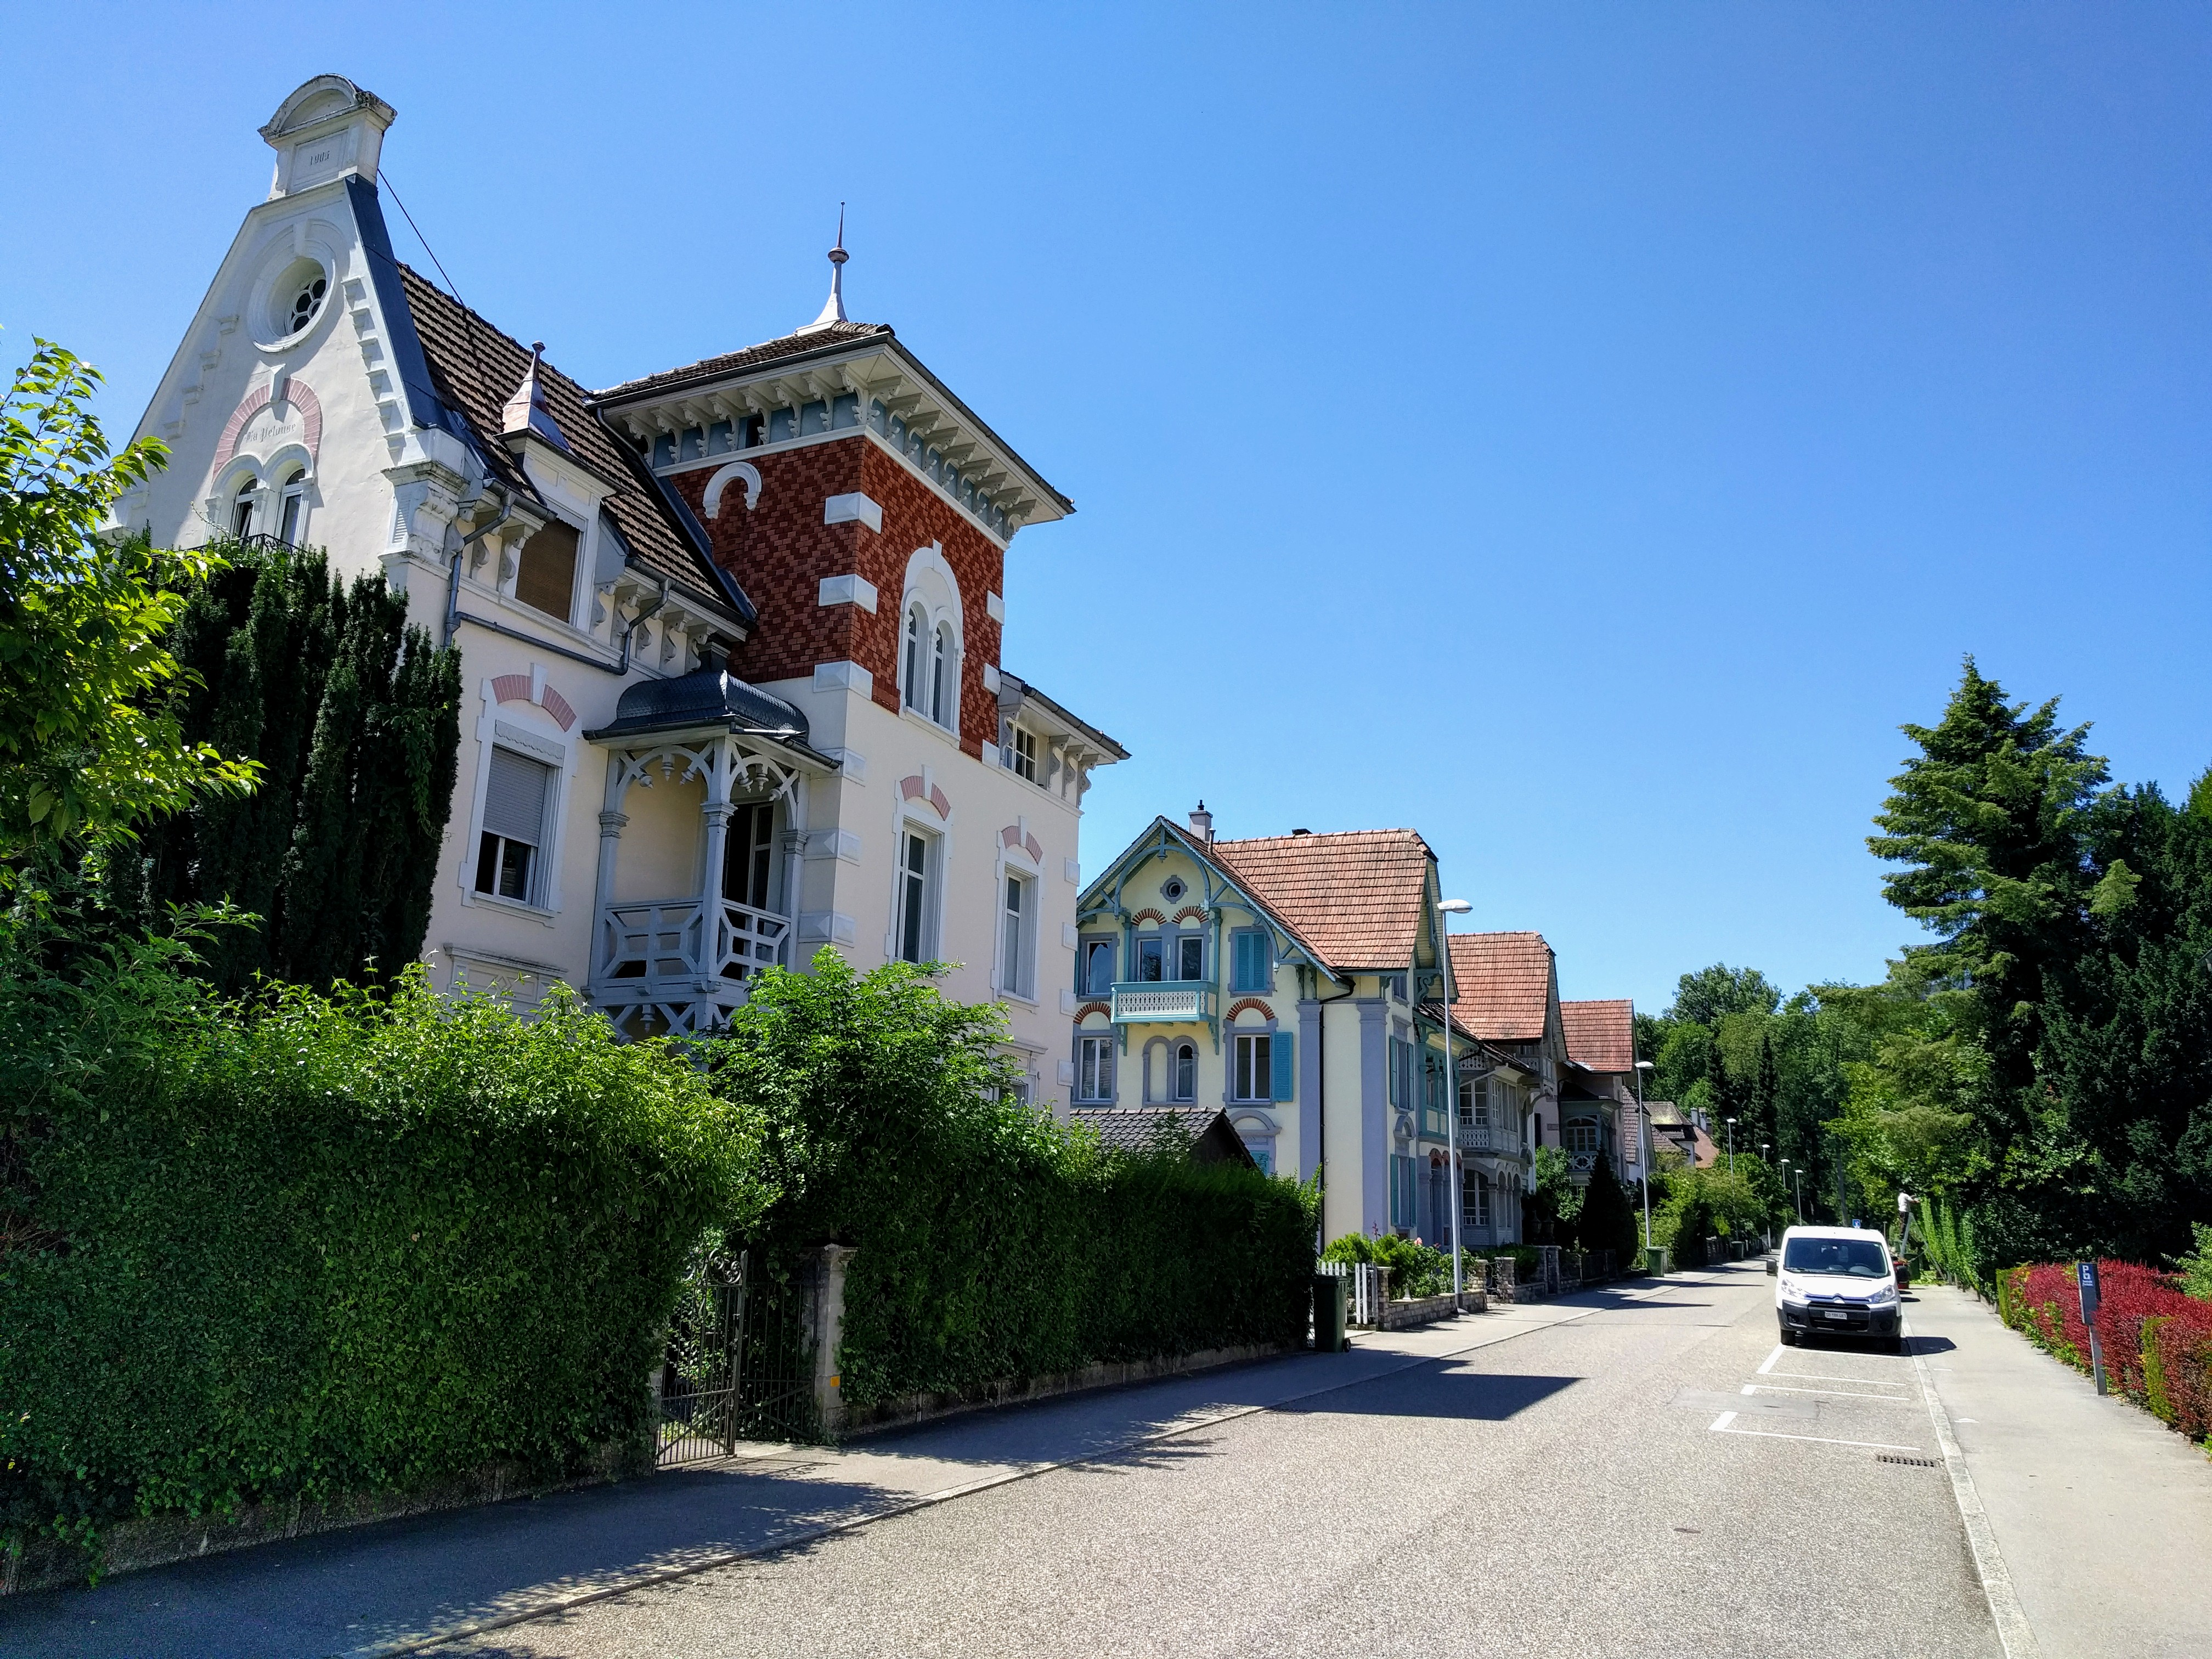 File Biel Street With Nice Houses Jpg Wikimedia Commons